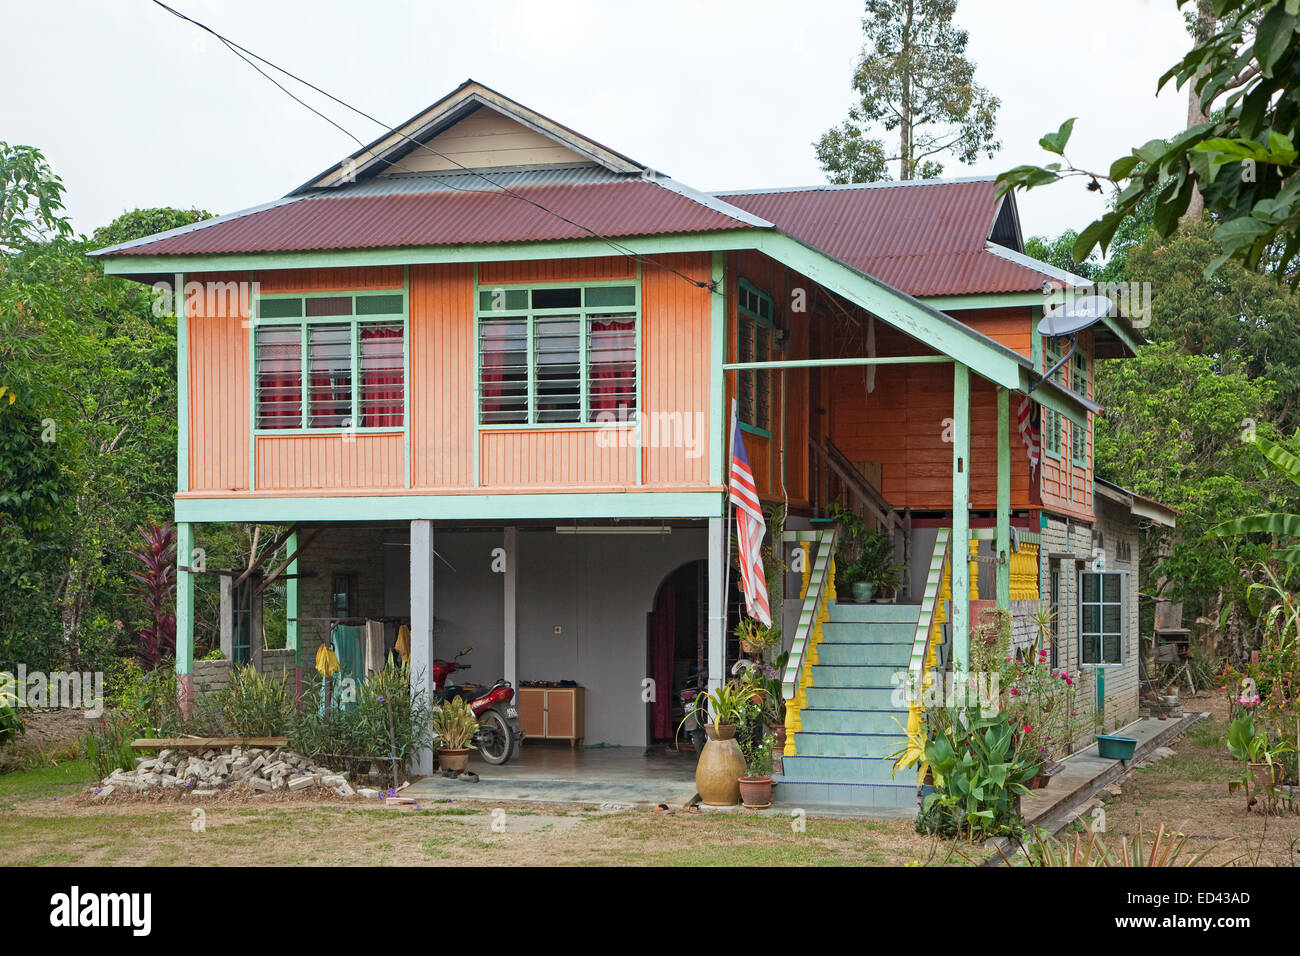 Modern Malaysian Wooden House On Pillars In The